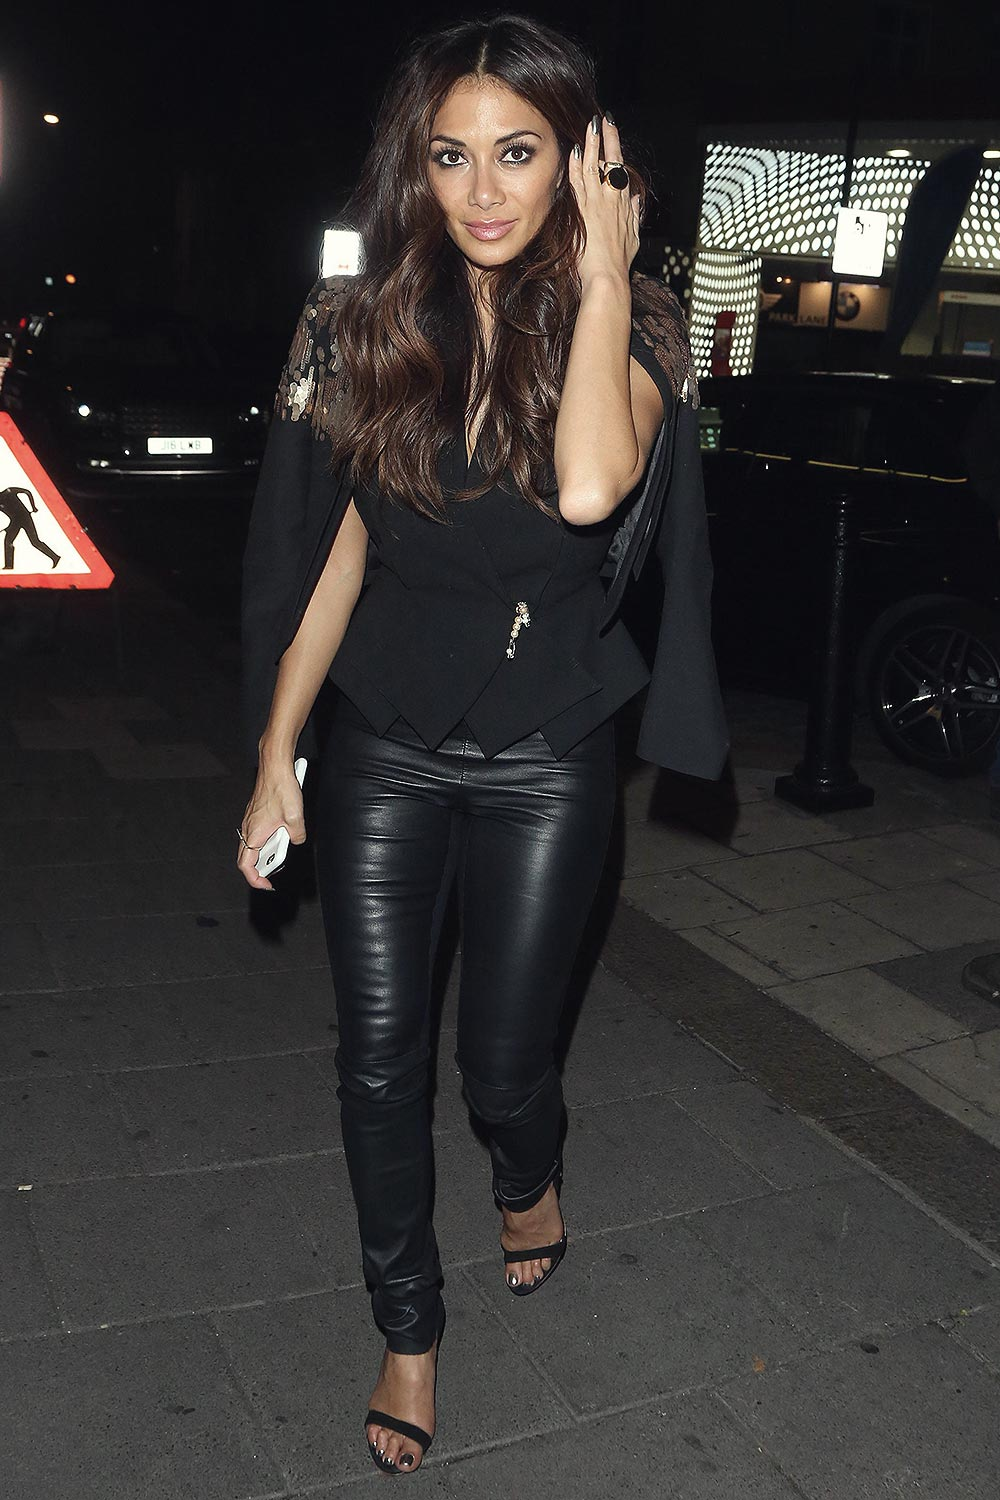 Nicole Scherzinger leaving the Wembley Arena